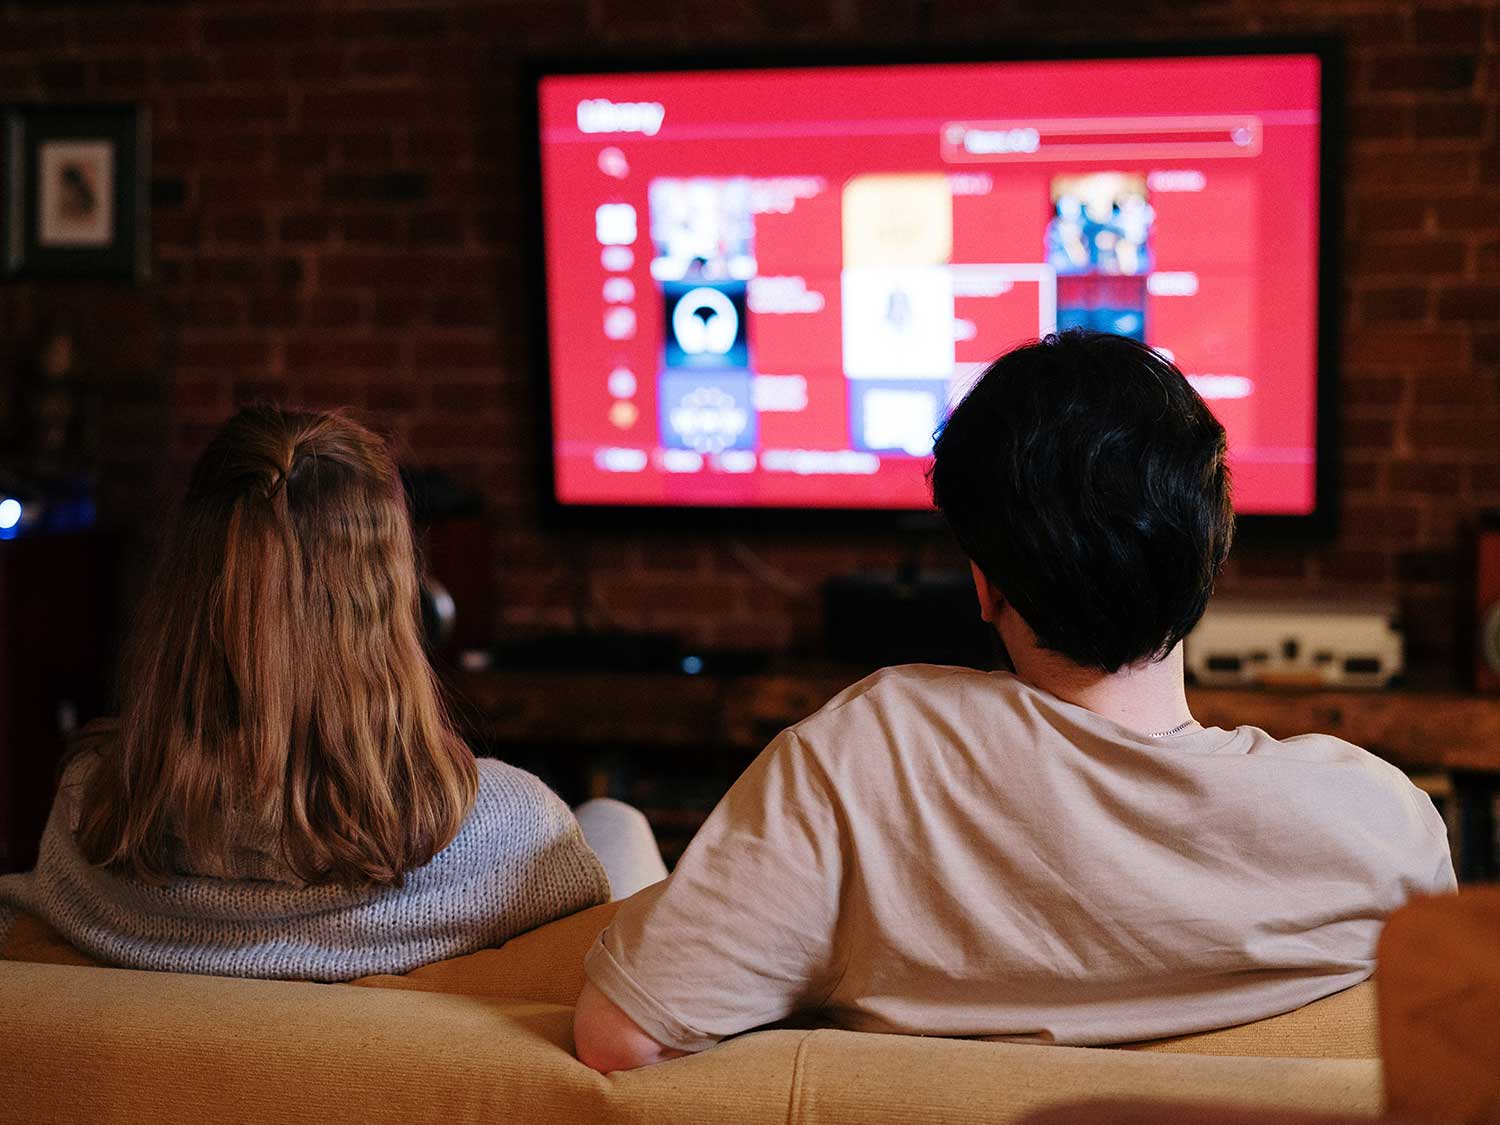 Man and woman watching movies on high-def TV.